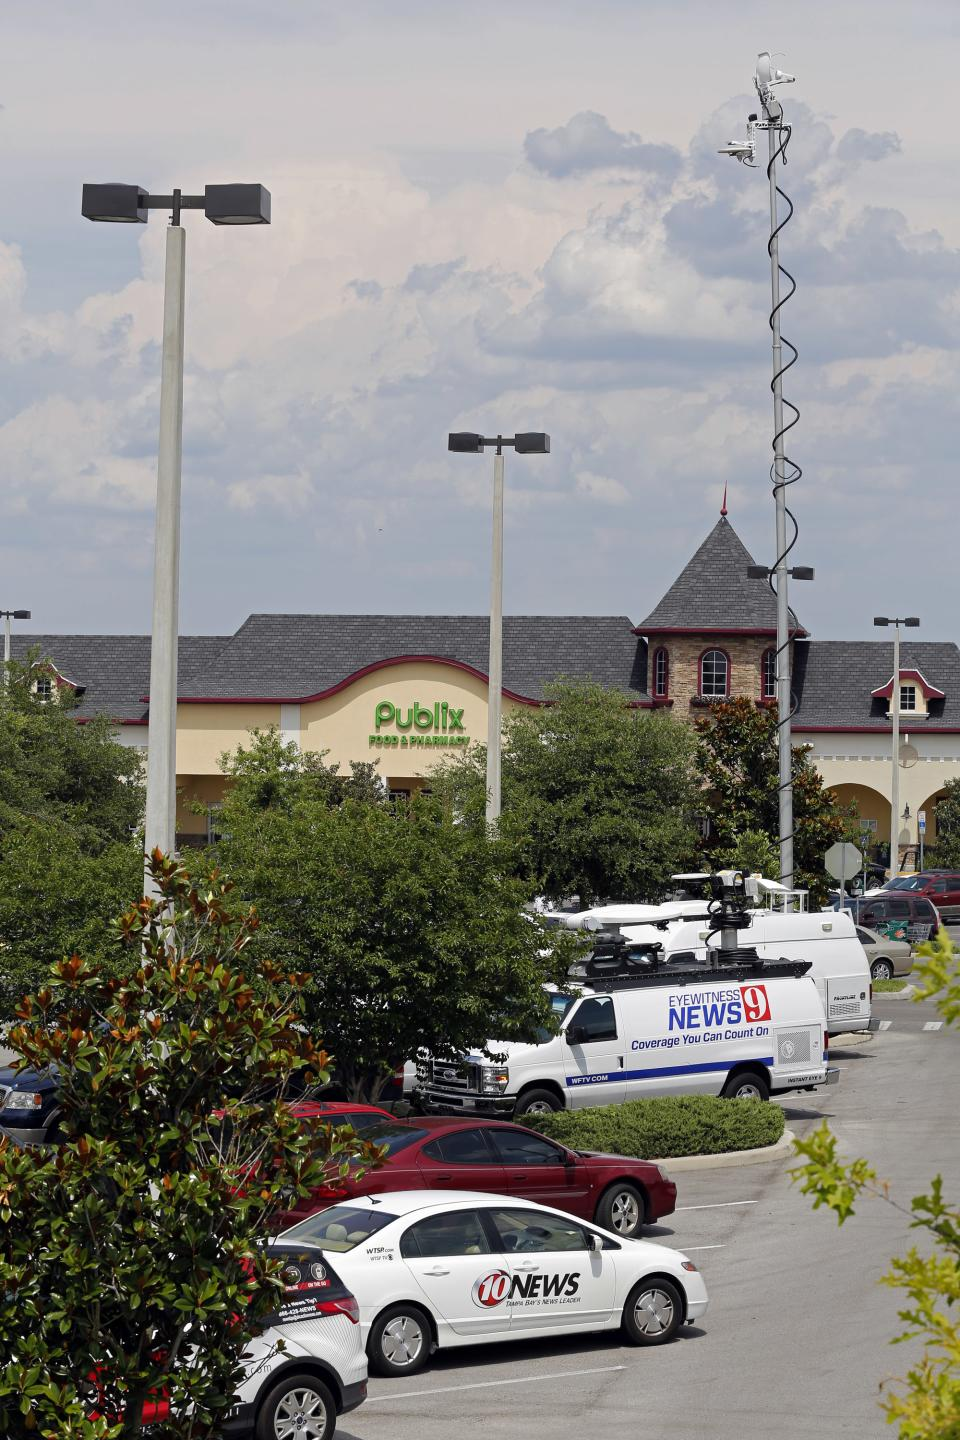 Satellite trucks line the parking lot where the highest Powerball jackpot worth an estimated $590.5 million was sold, at a Publix supermarket in Zephyrhills, Fla. on Sunday, May 19, 2013. (AP Photo/Scott Iskowitz)